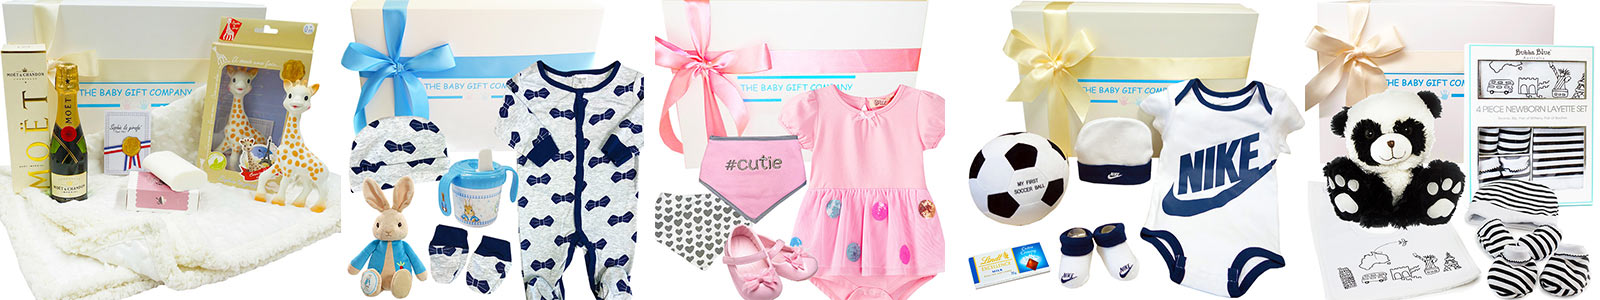 The Baby Gift Company's banner